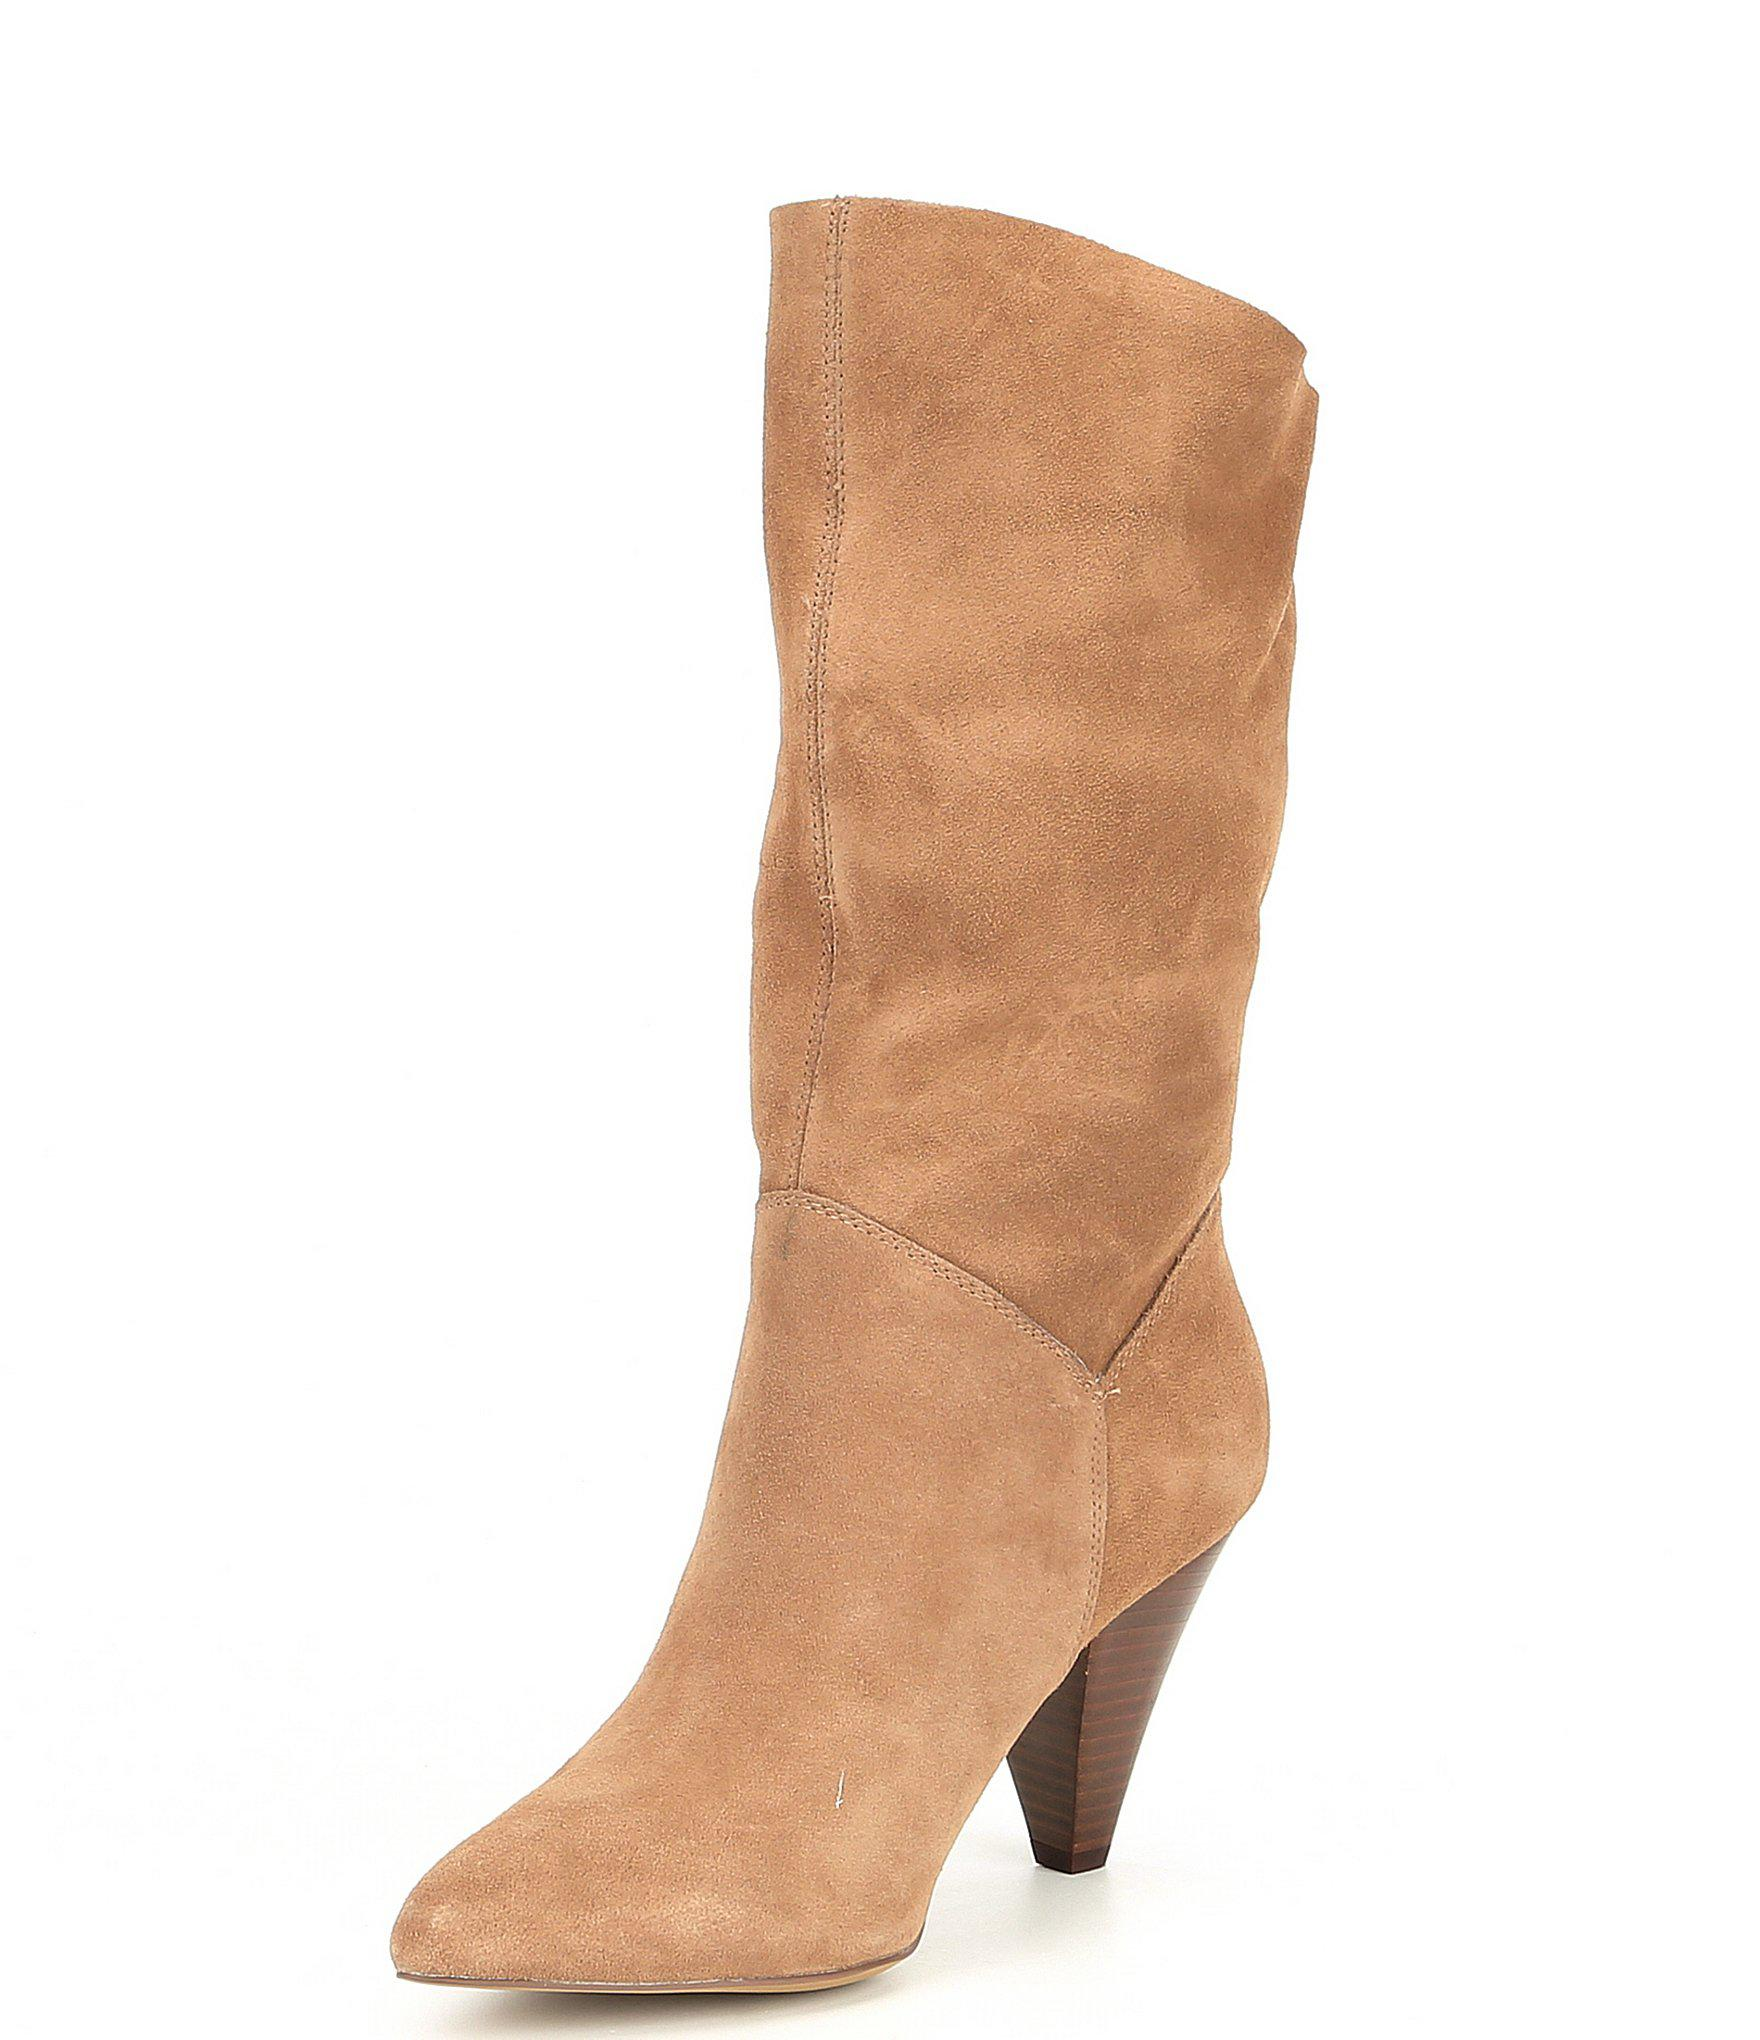 f42ea7fede5 Lyst - Steve Madden Rein Suede Mid-calf Boots in Brown